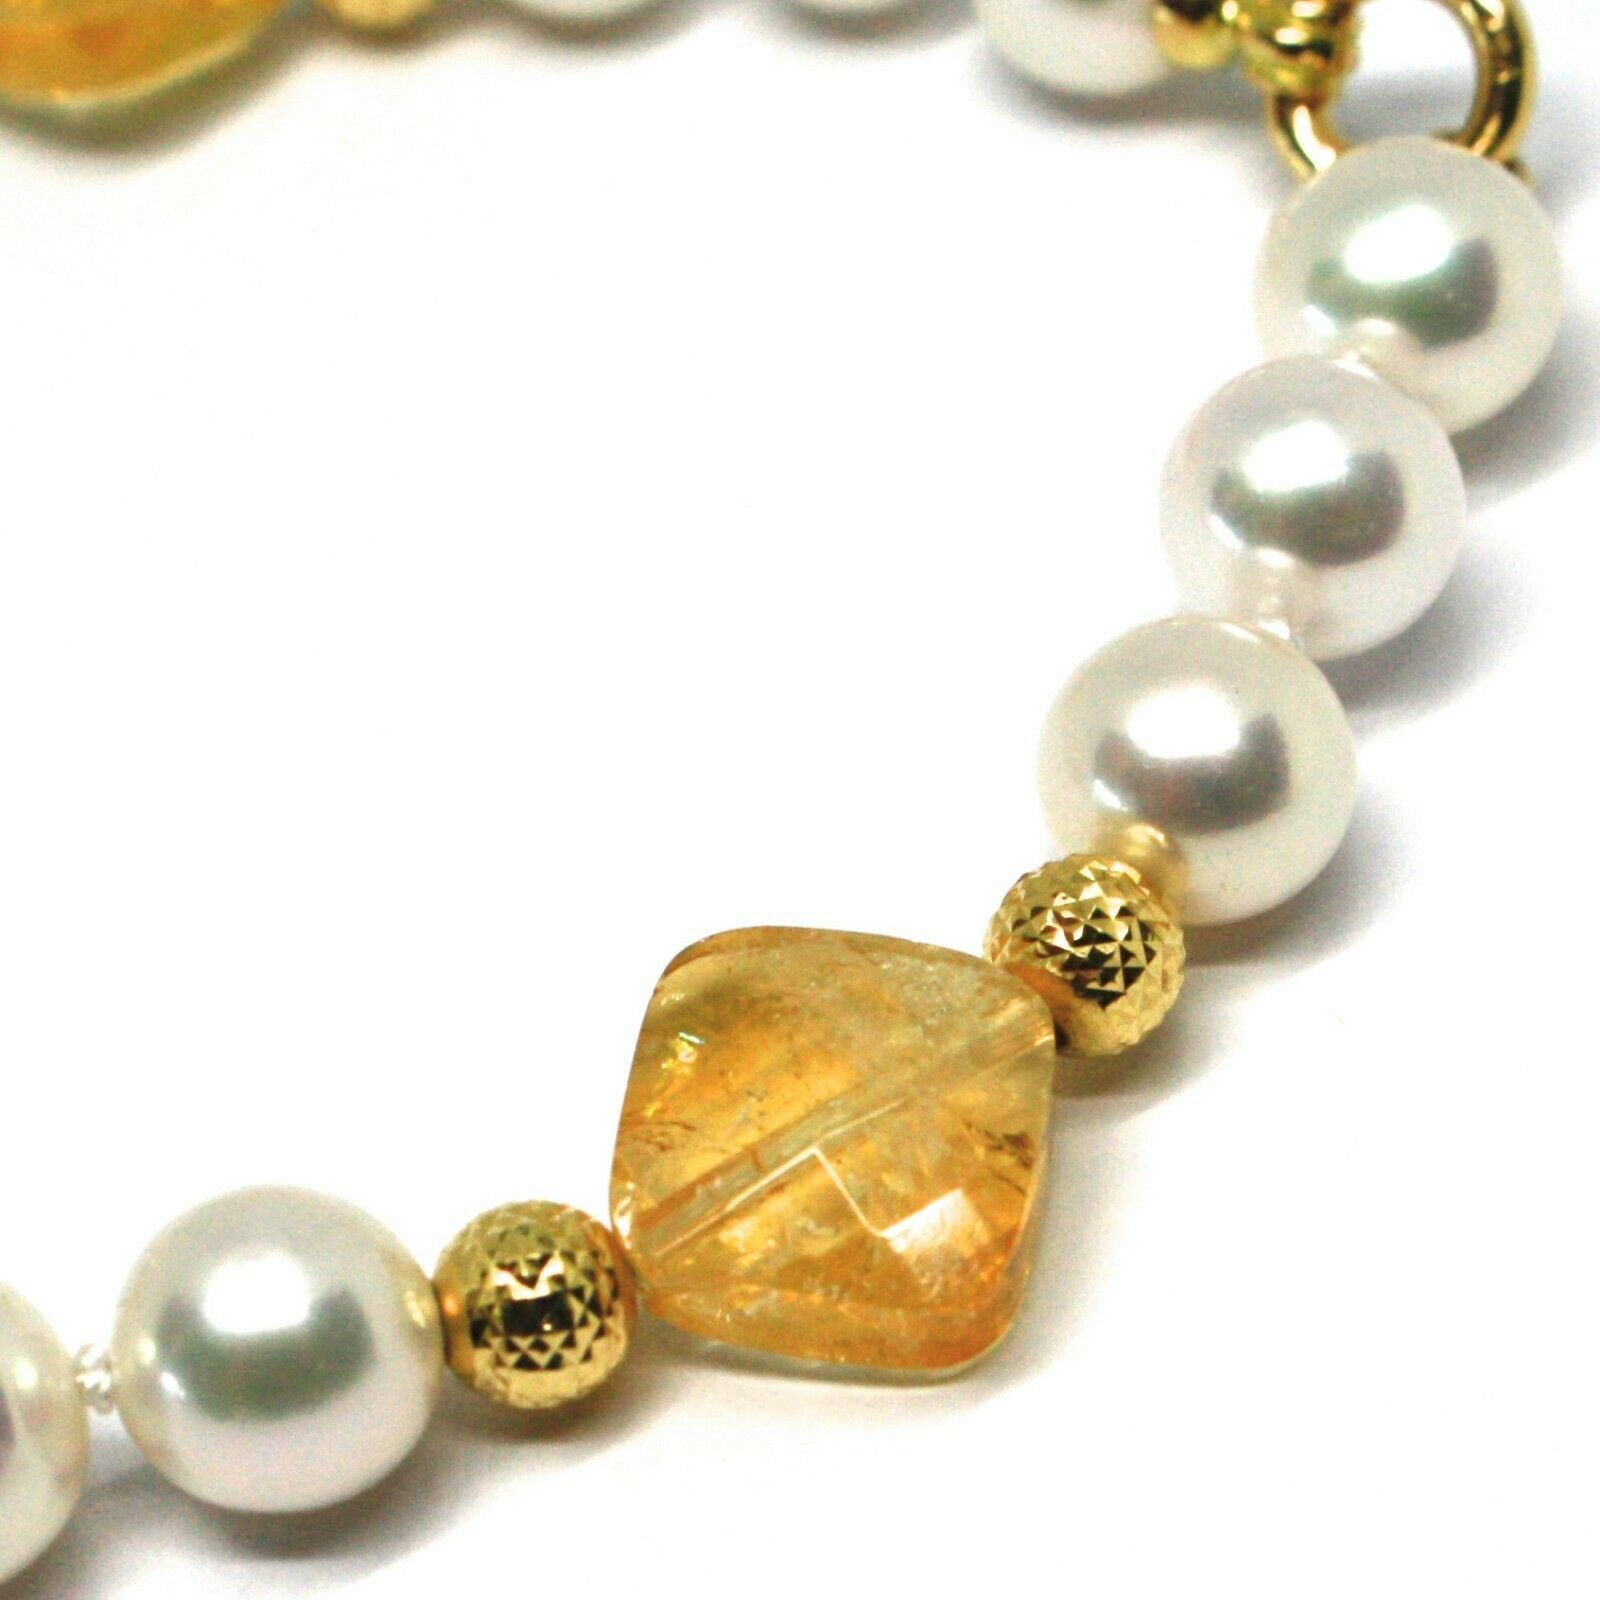 Bracelet Yellow Gold 18K 750, Citrine, White Pearl Balls Pattern~